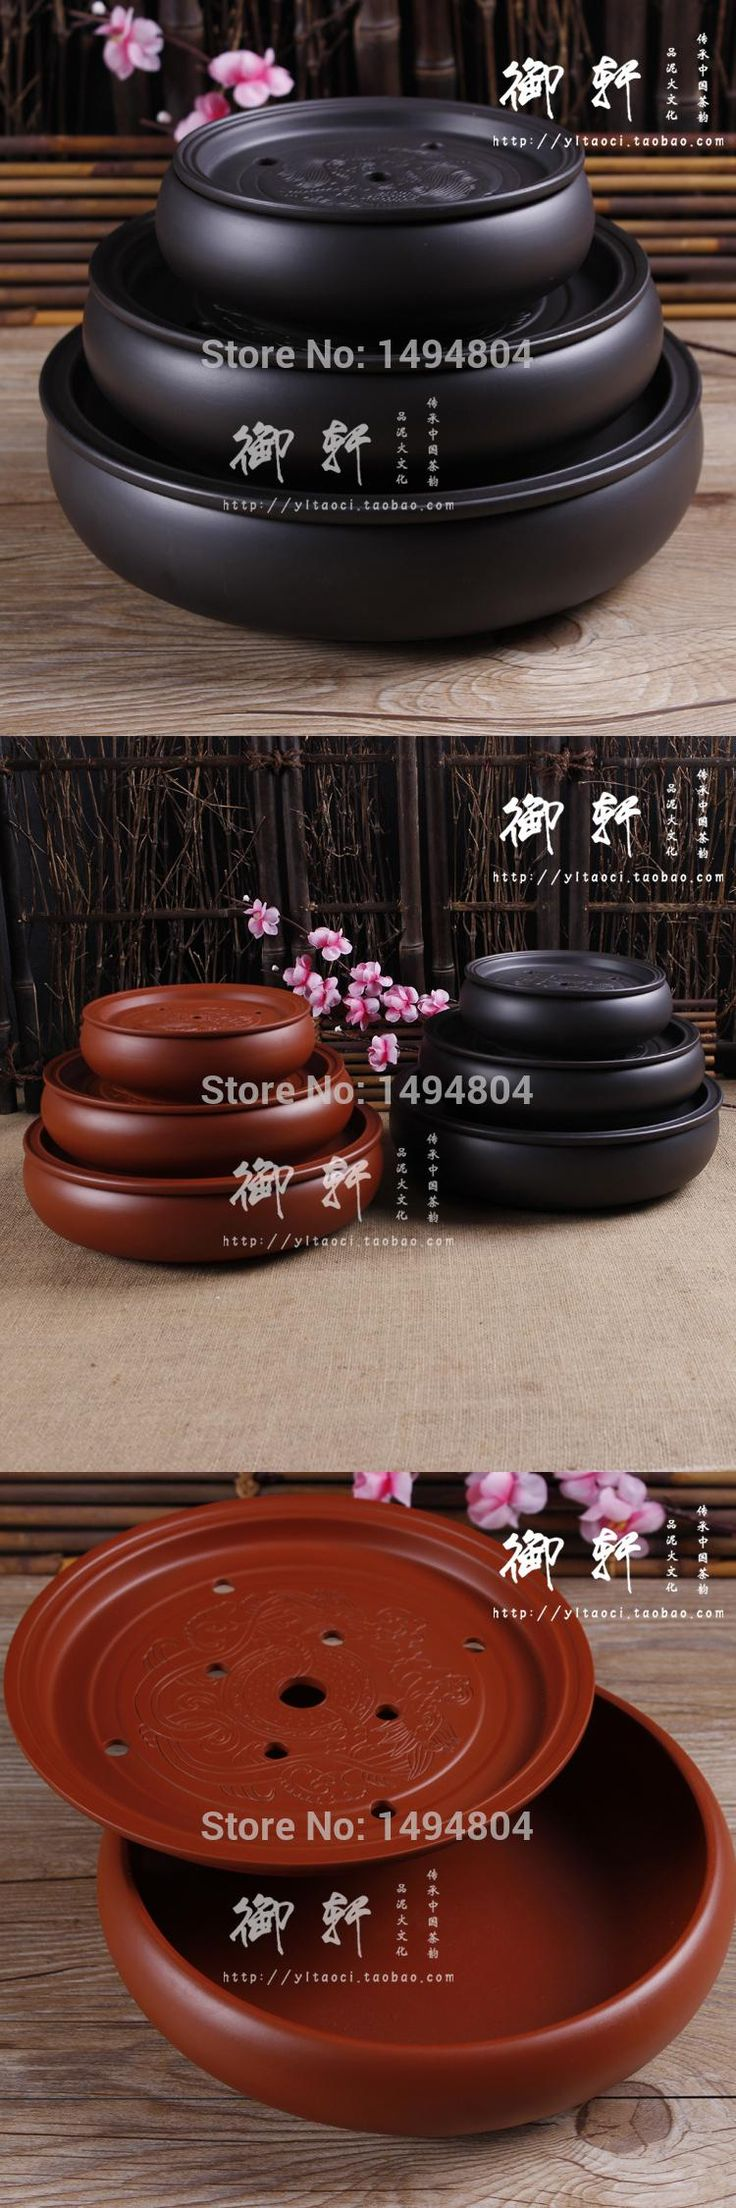 [Visit to Buy] Tea Tray Handmade Yixing Redware(purple clay) Ceramic Tea Sets, Traditional Chinese Tea Tray suit A,B,C,D,E,F Can be Chosen #Advertisement